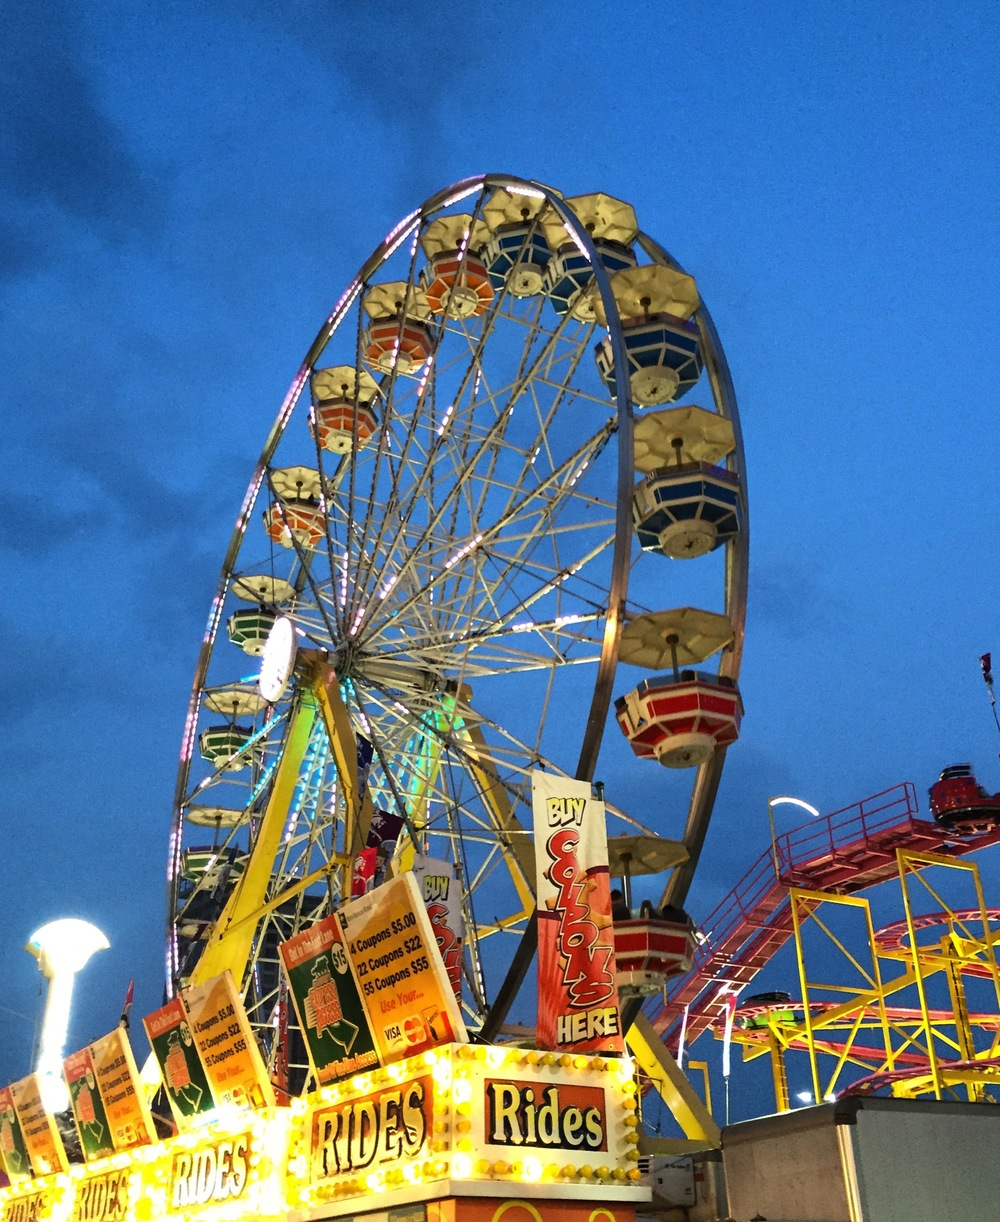 CNE_2015_NightPhotography_iPhone_FerrisWheel2_SGroff